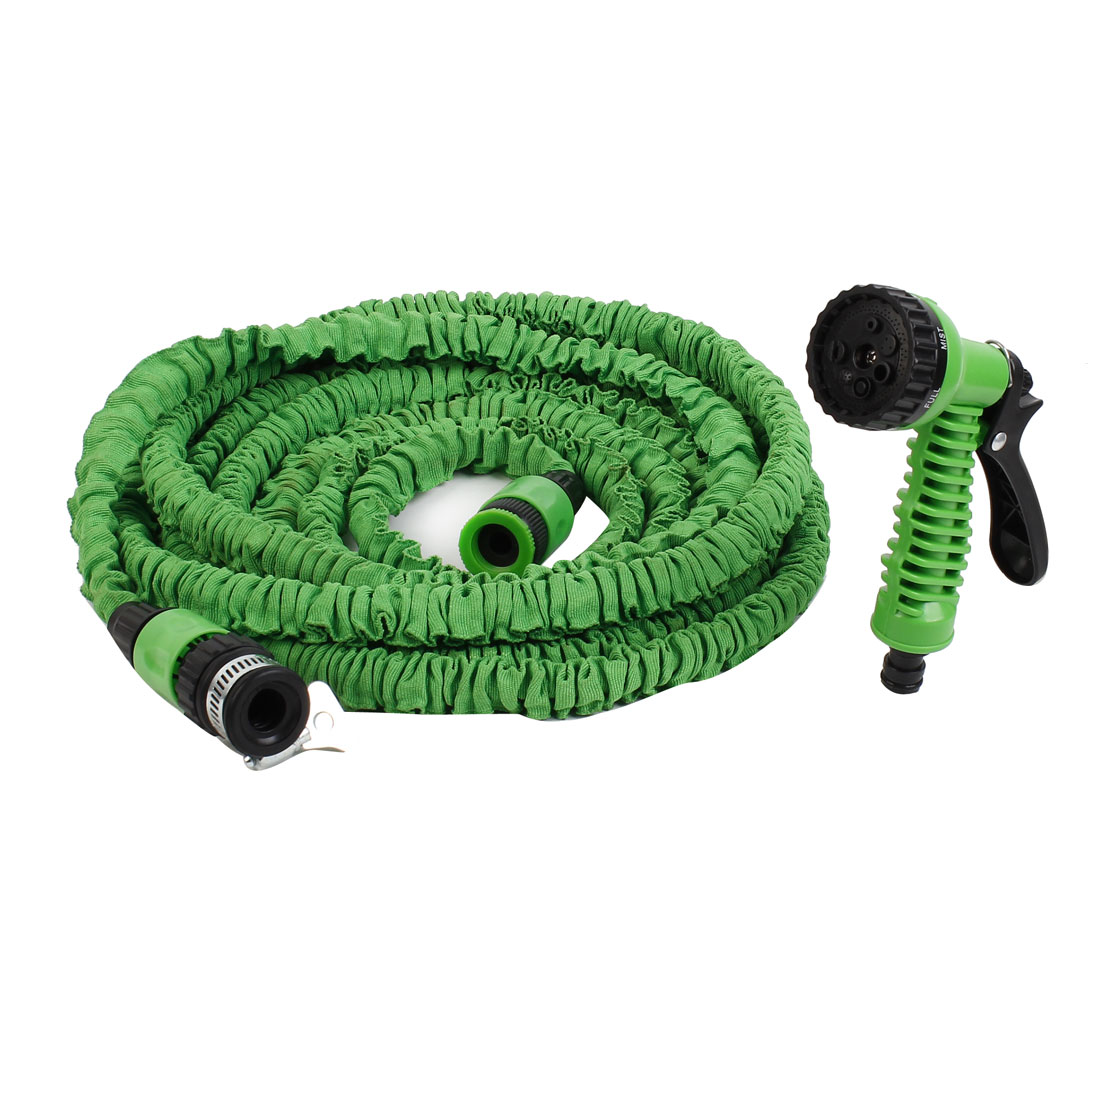 15M 50ft Long Nylon Hose Garden Watering Car Washing Gun Sprayer Green